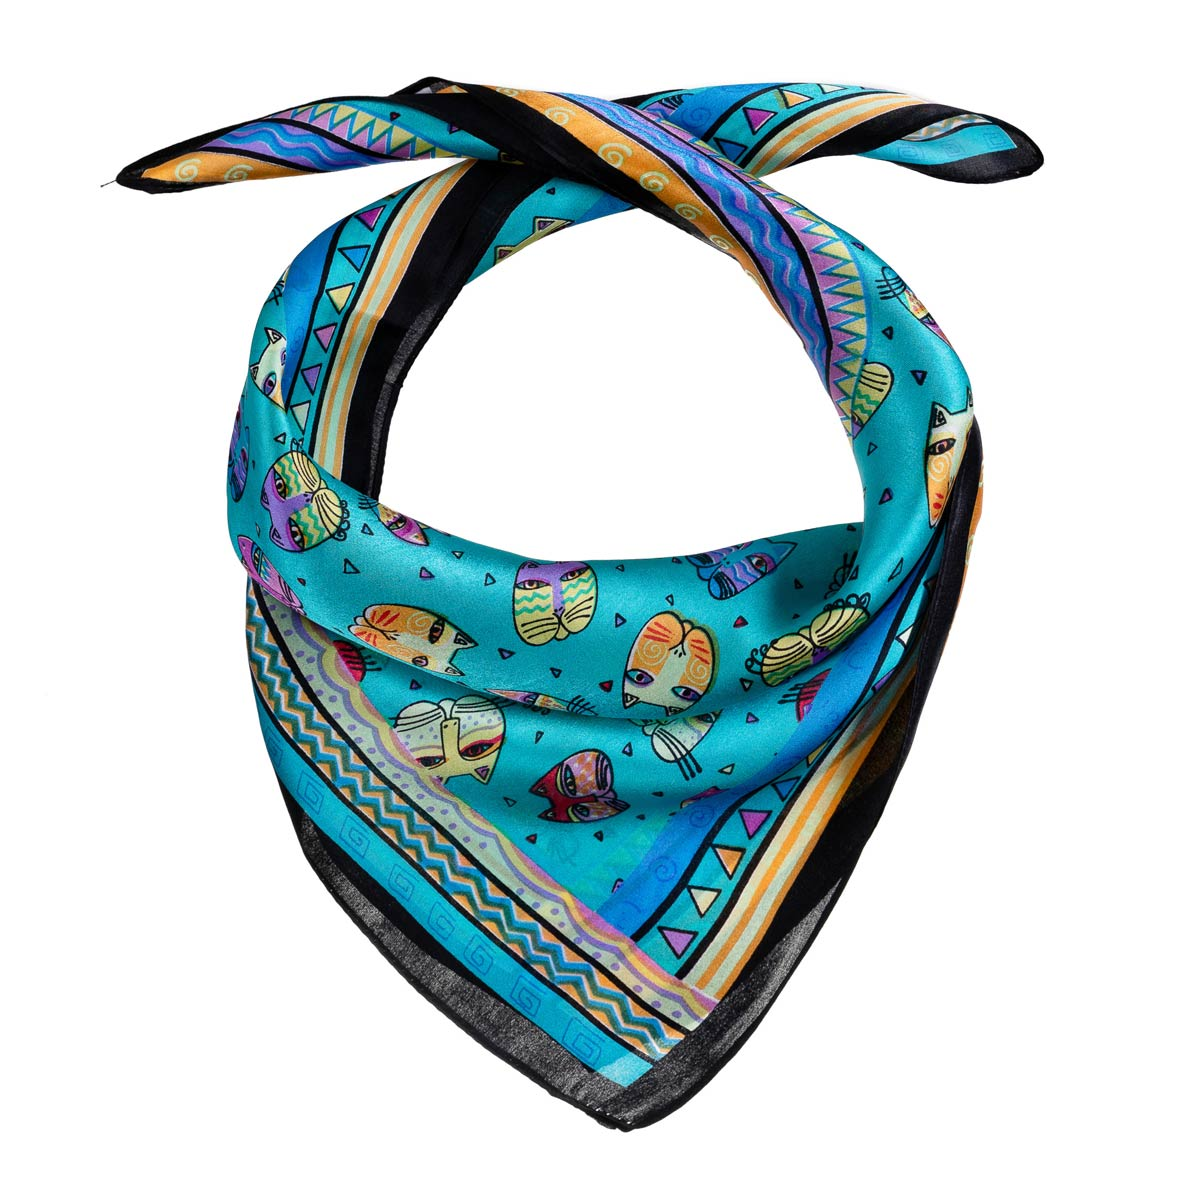 AT-06266-F12-foulard-carre-soie-tetes-de-chats